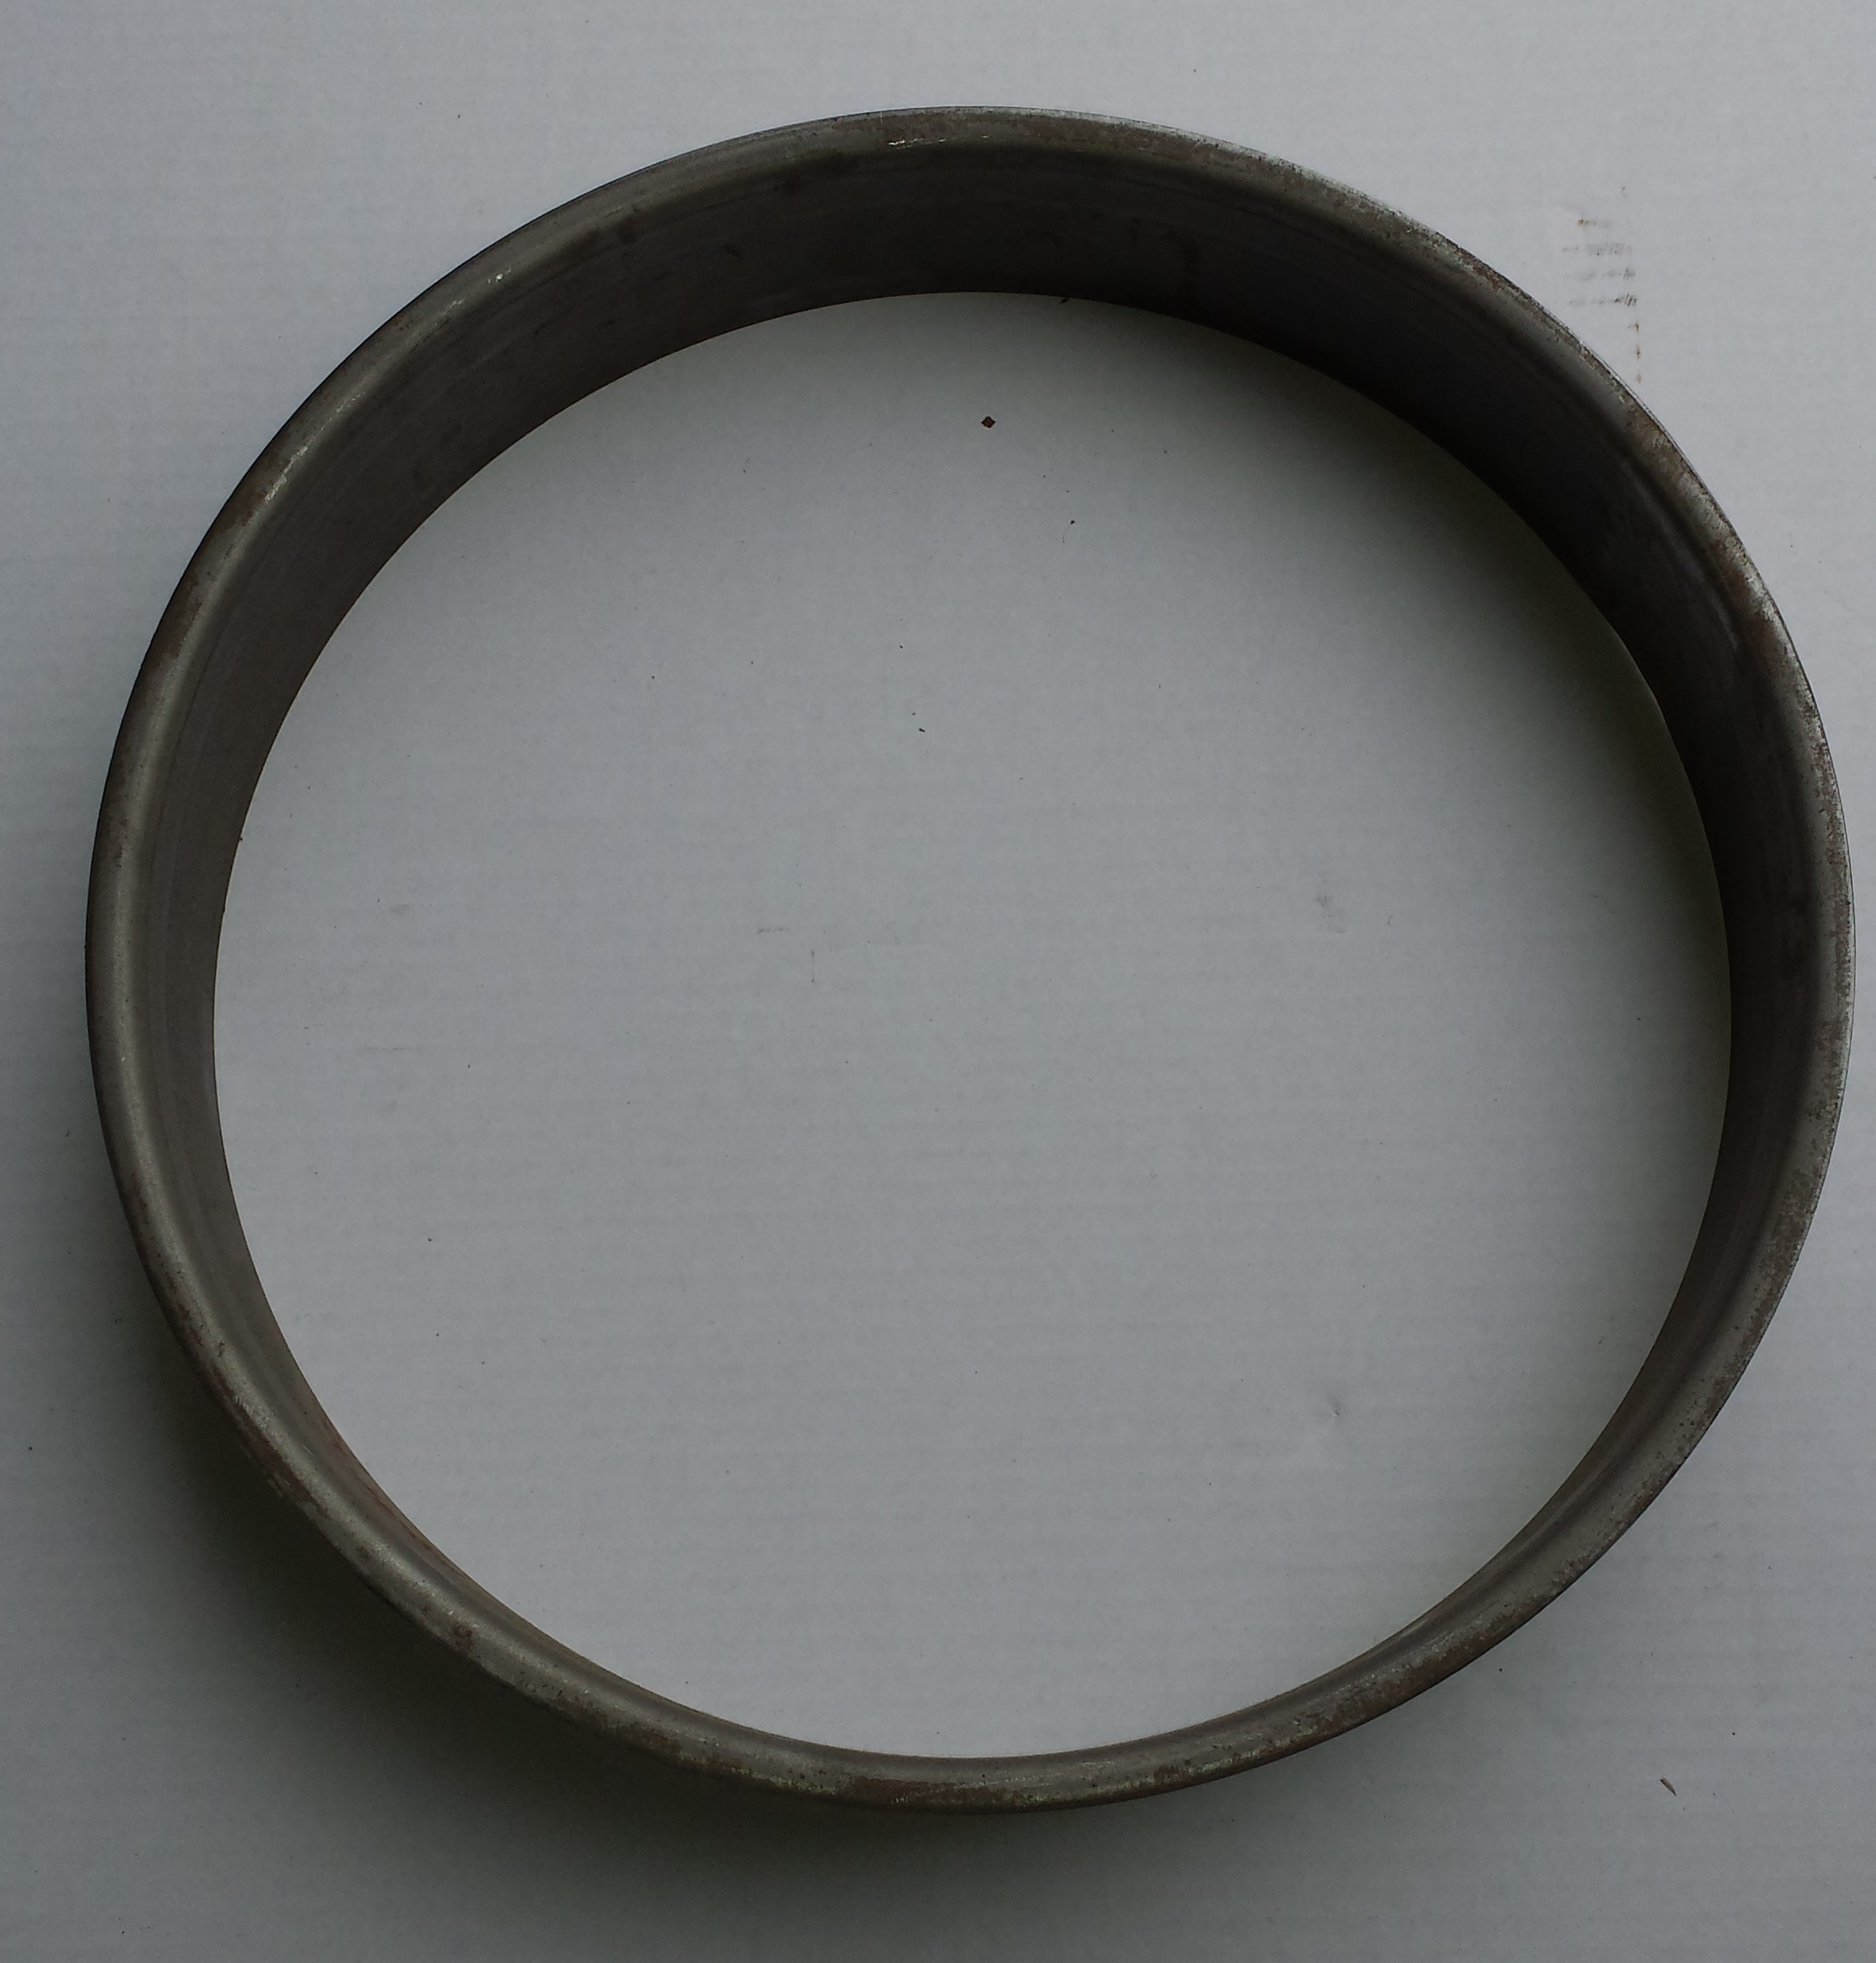 MS WELD COLLAR